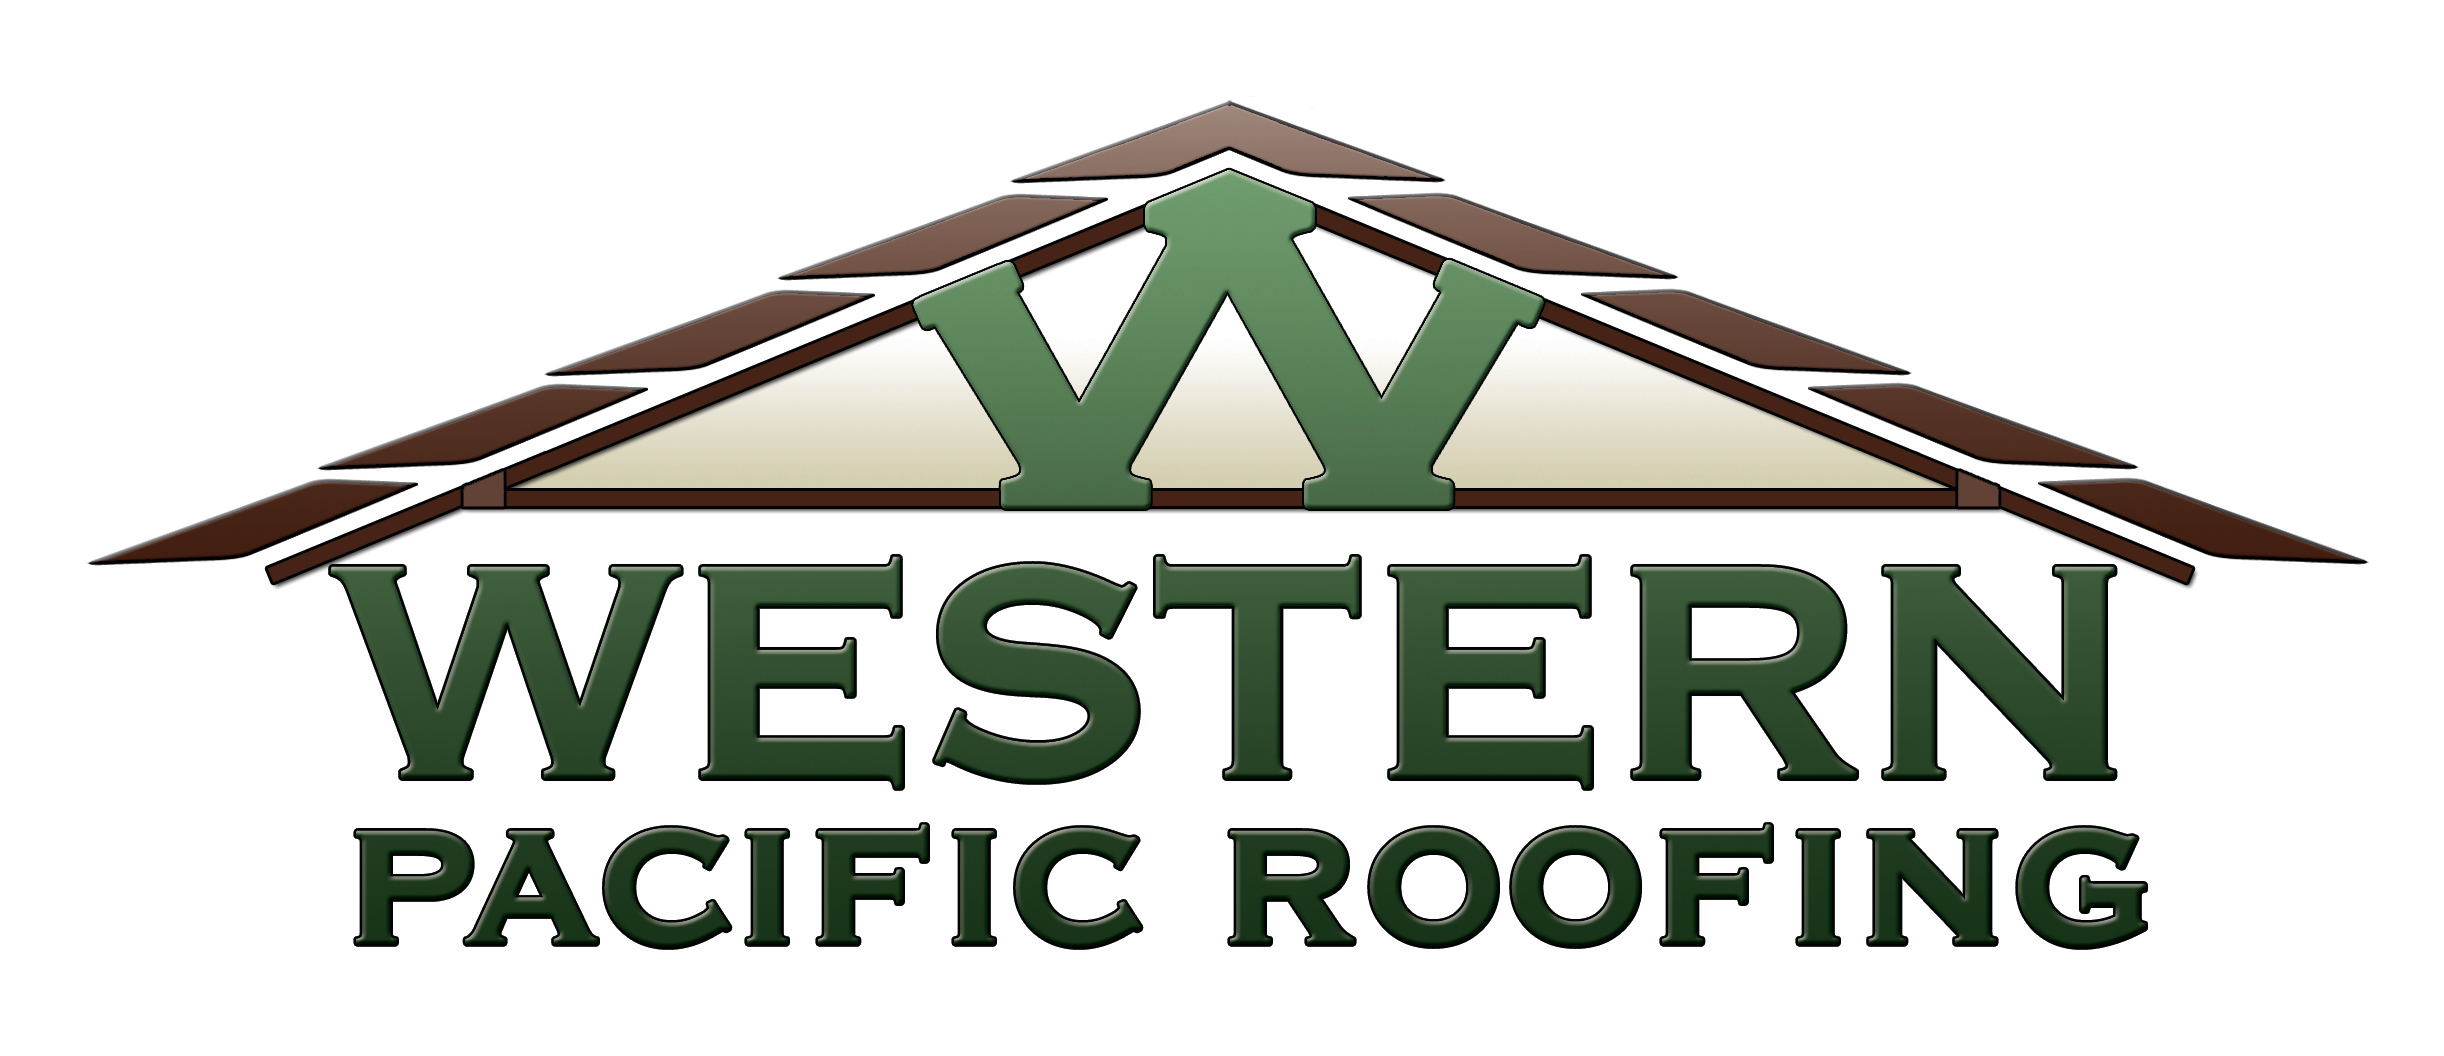 Bliss Roofing At 14430 Se 98th Ct Clackamas Or On Fave